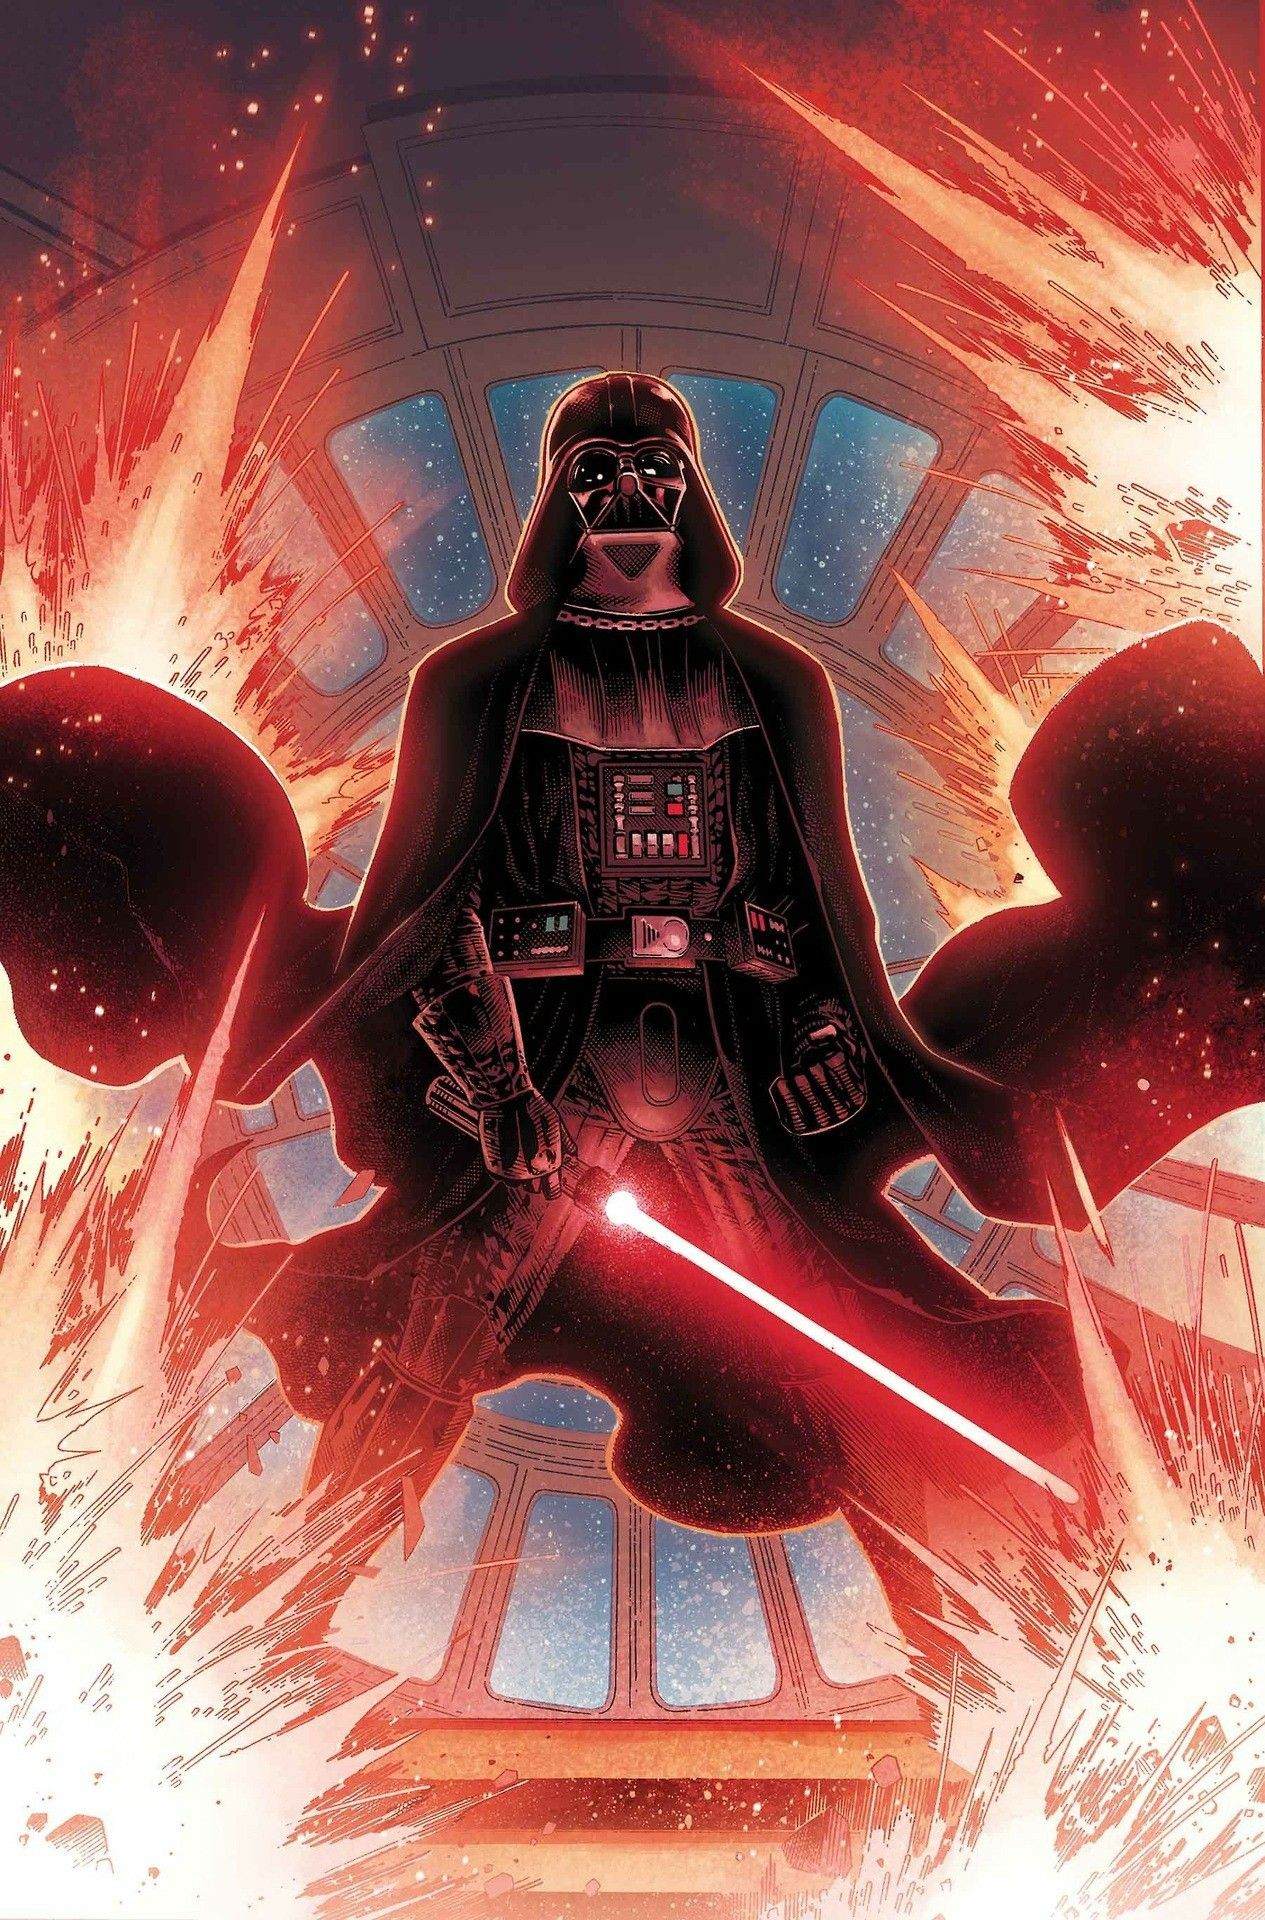 Pin By Davyd On Starwars Star Wars Star Wars Comics Darth Vader